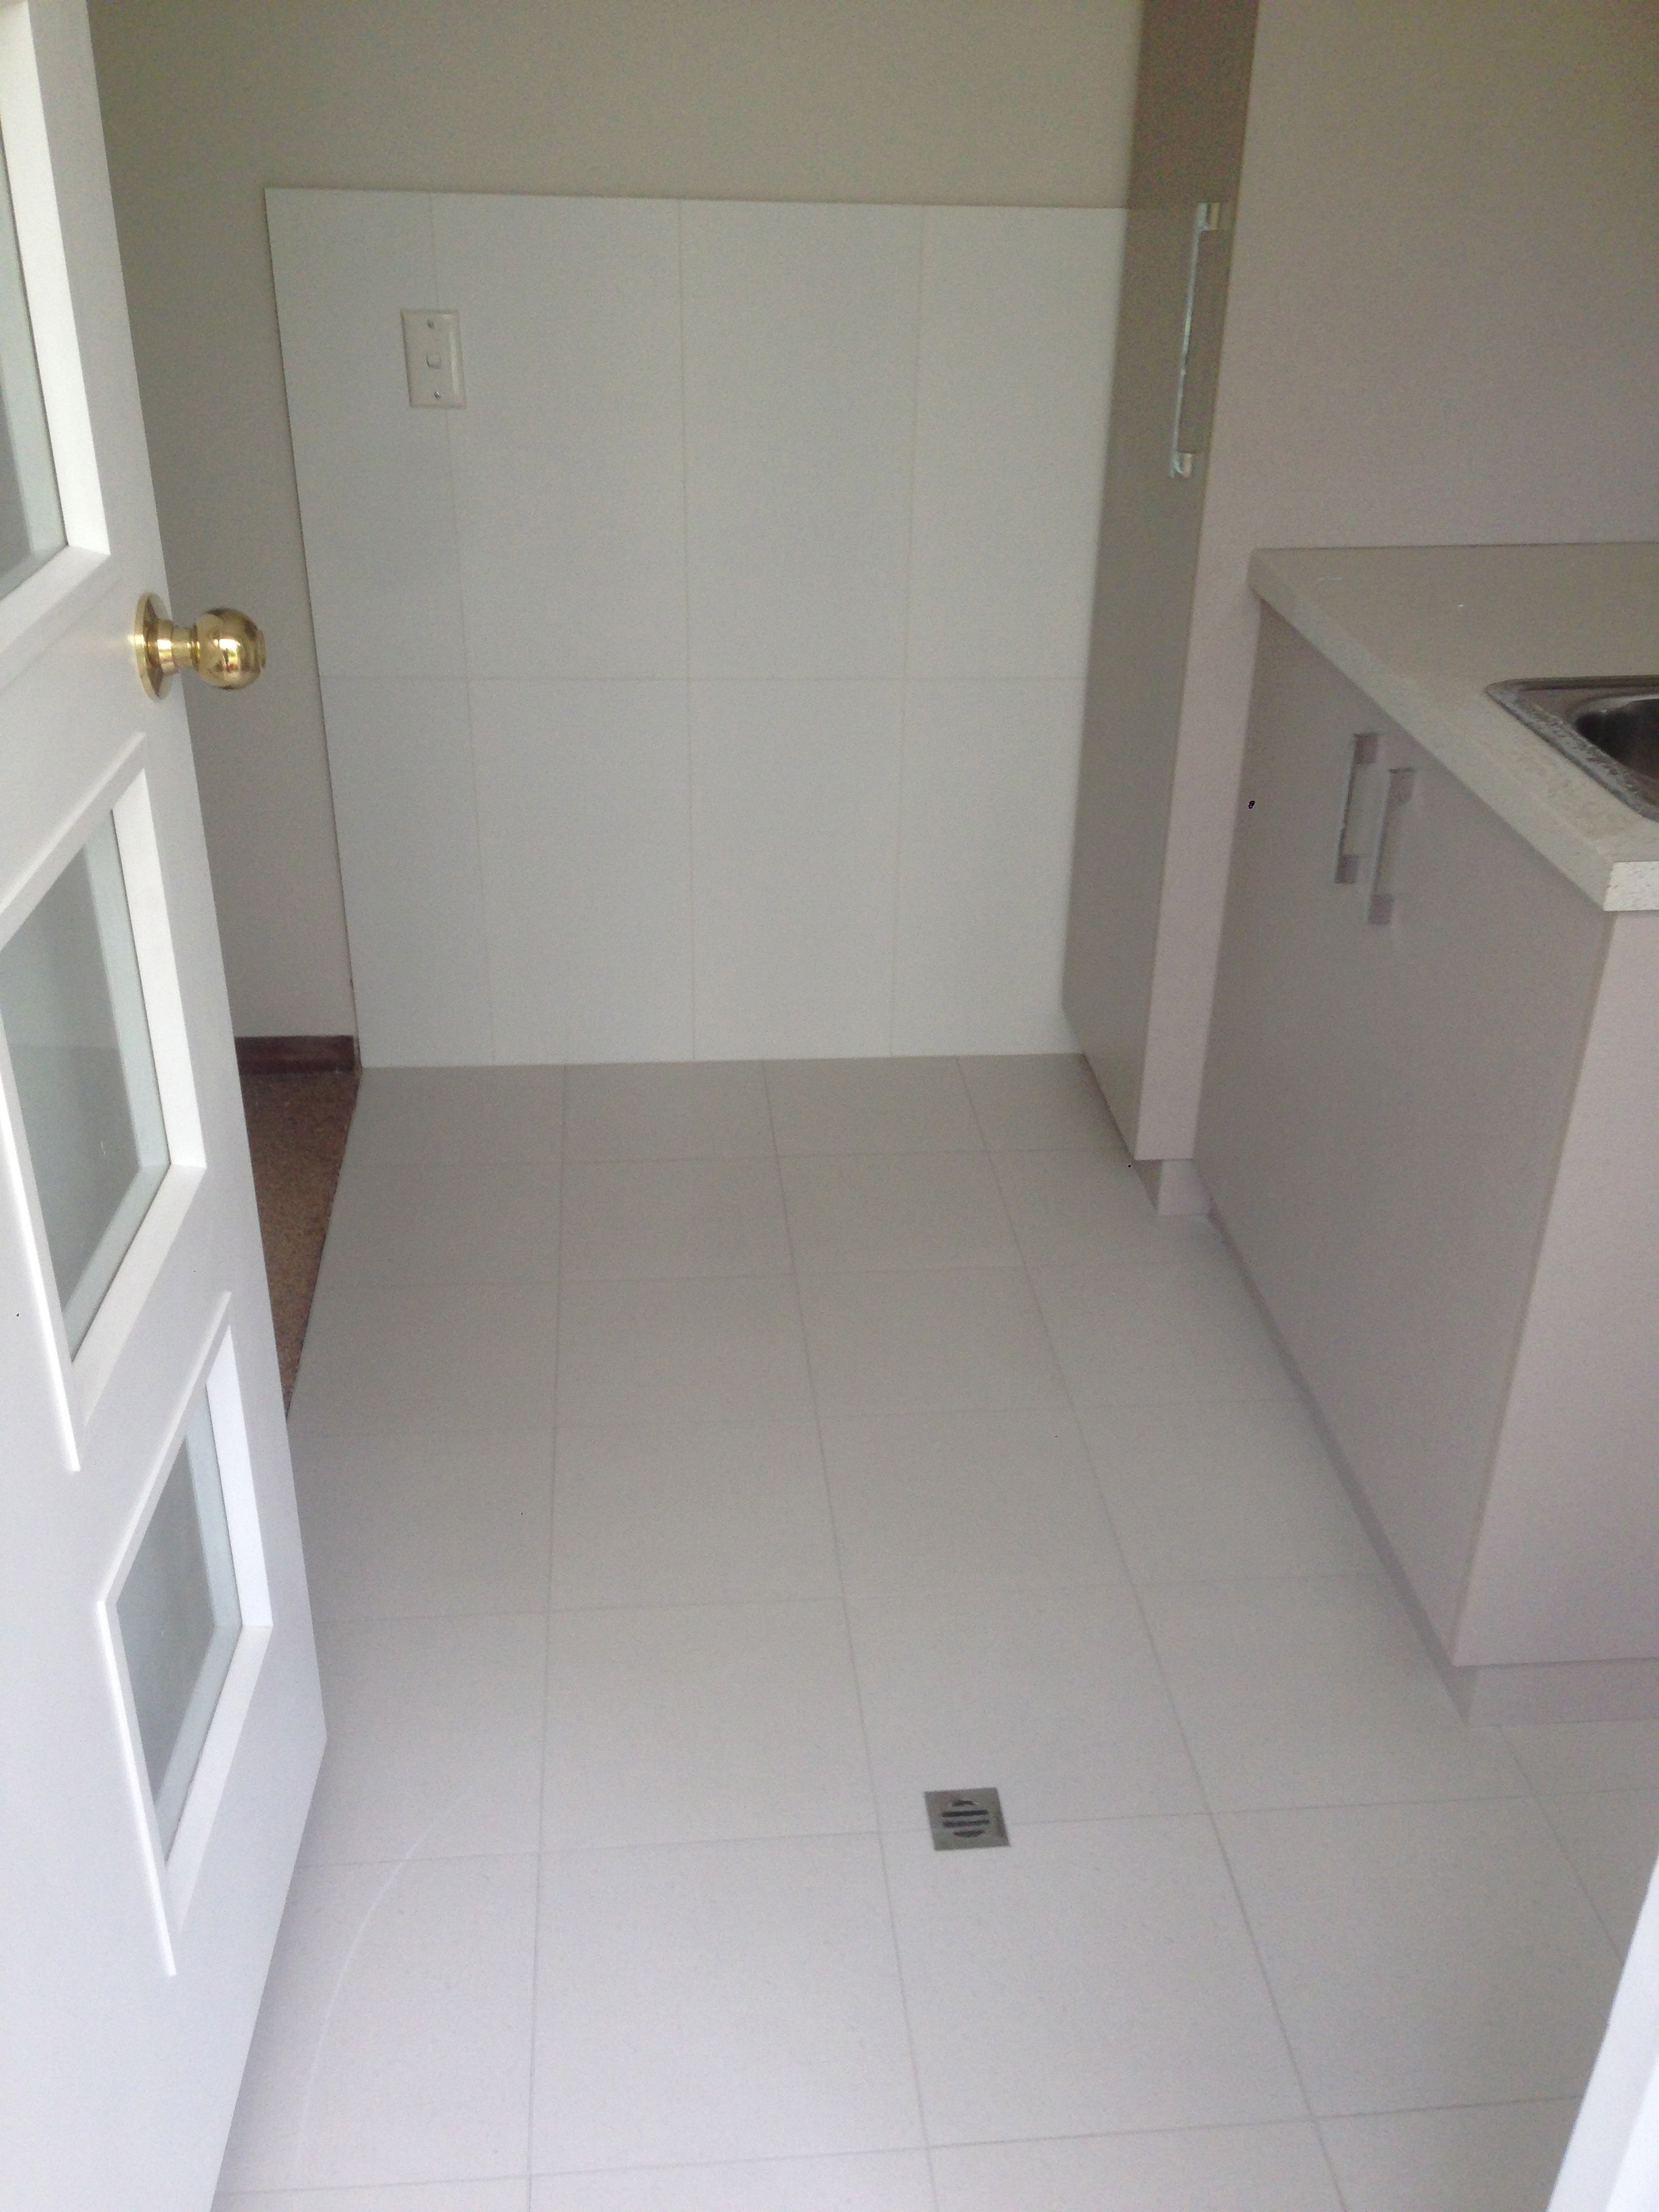 Tiling in perth perth tiling effective tiling solutions floor tiling perth dailygadgetfo Choice Image